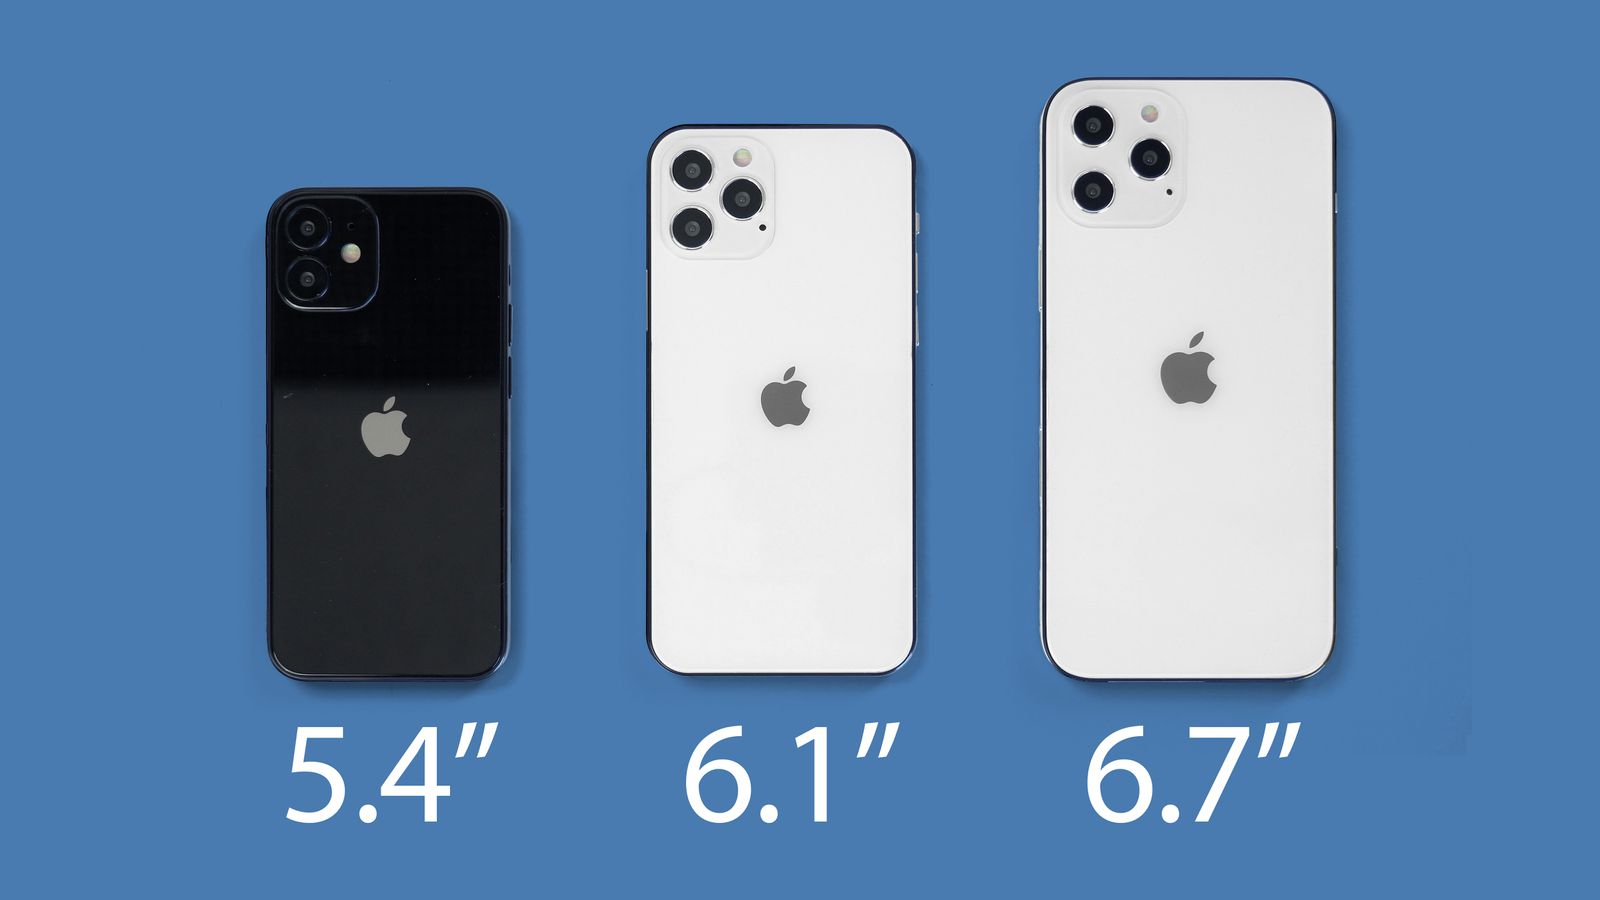 Hands On With Iphone 12 Models Showing New Sizes And Design Macrumors